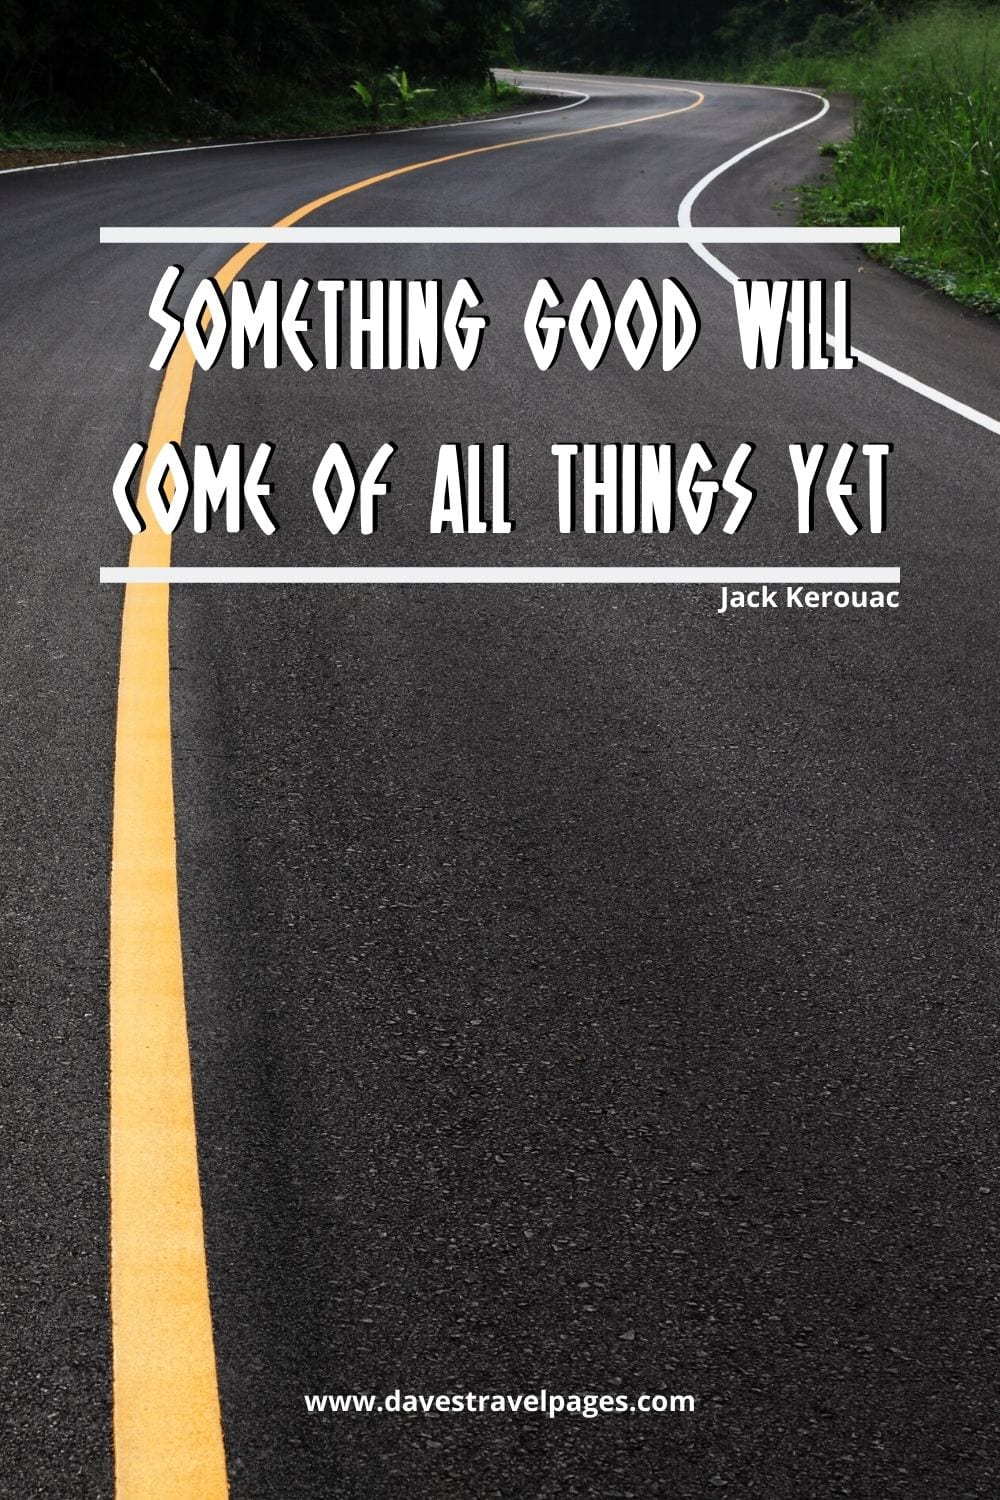 """Something good will come of all things yet"": Jack Kerouac"